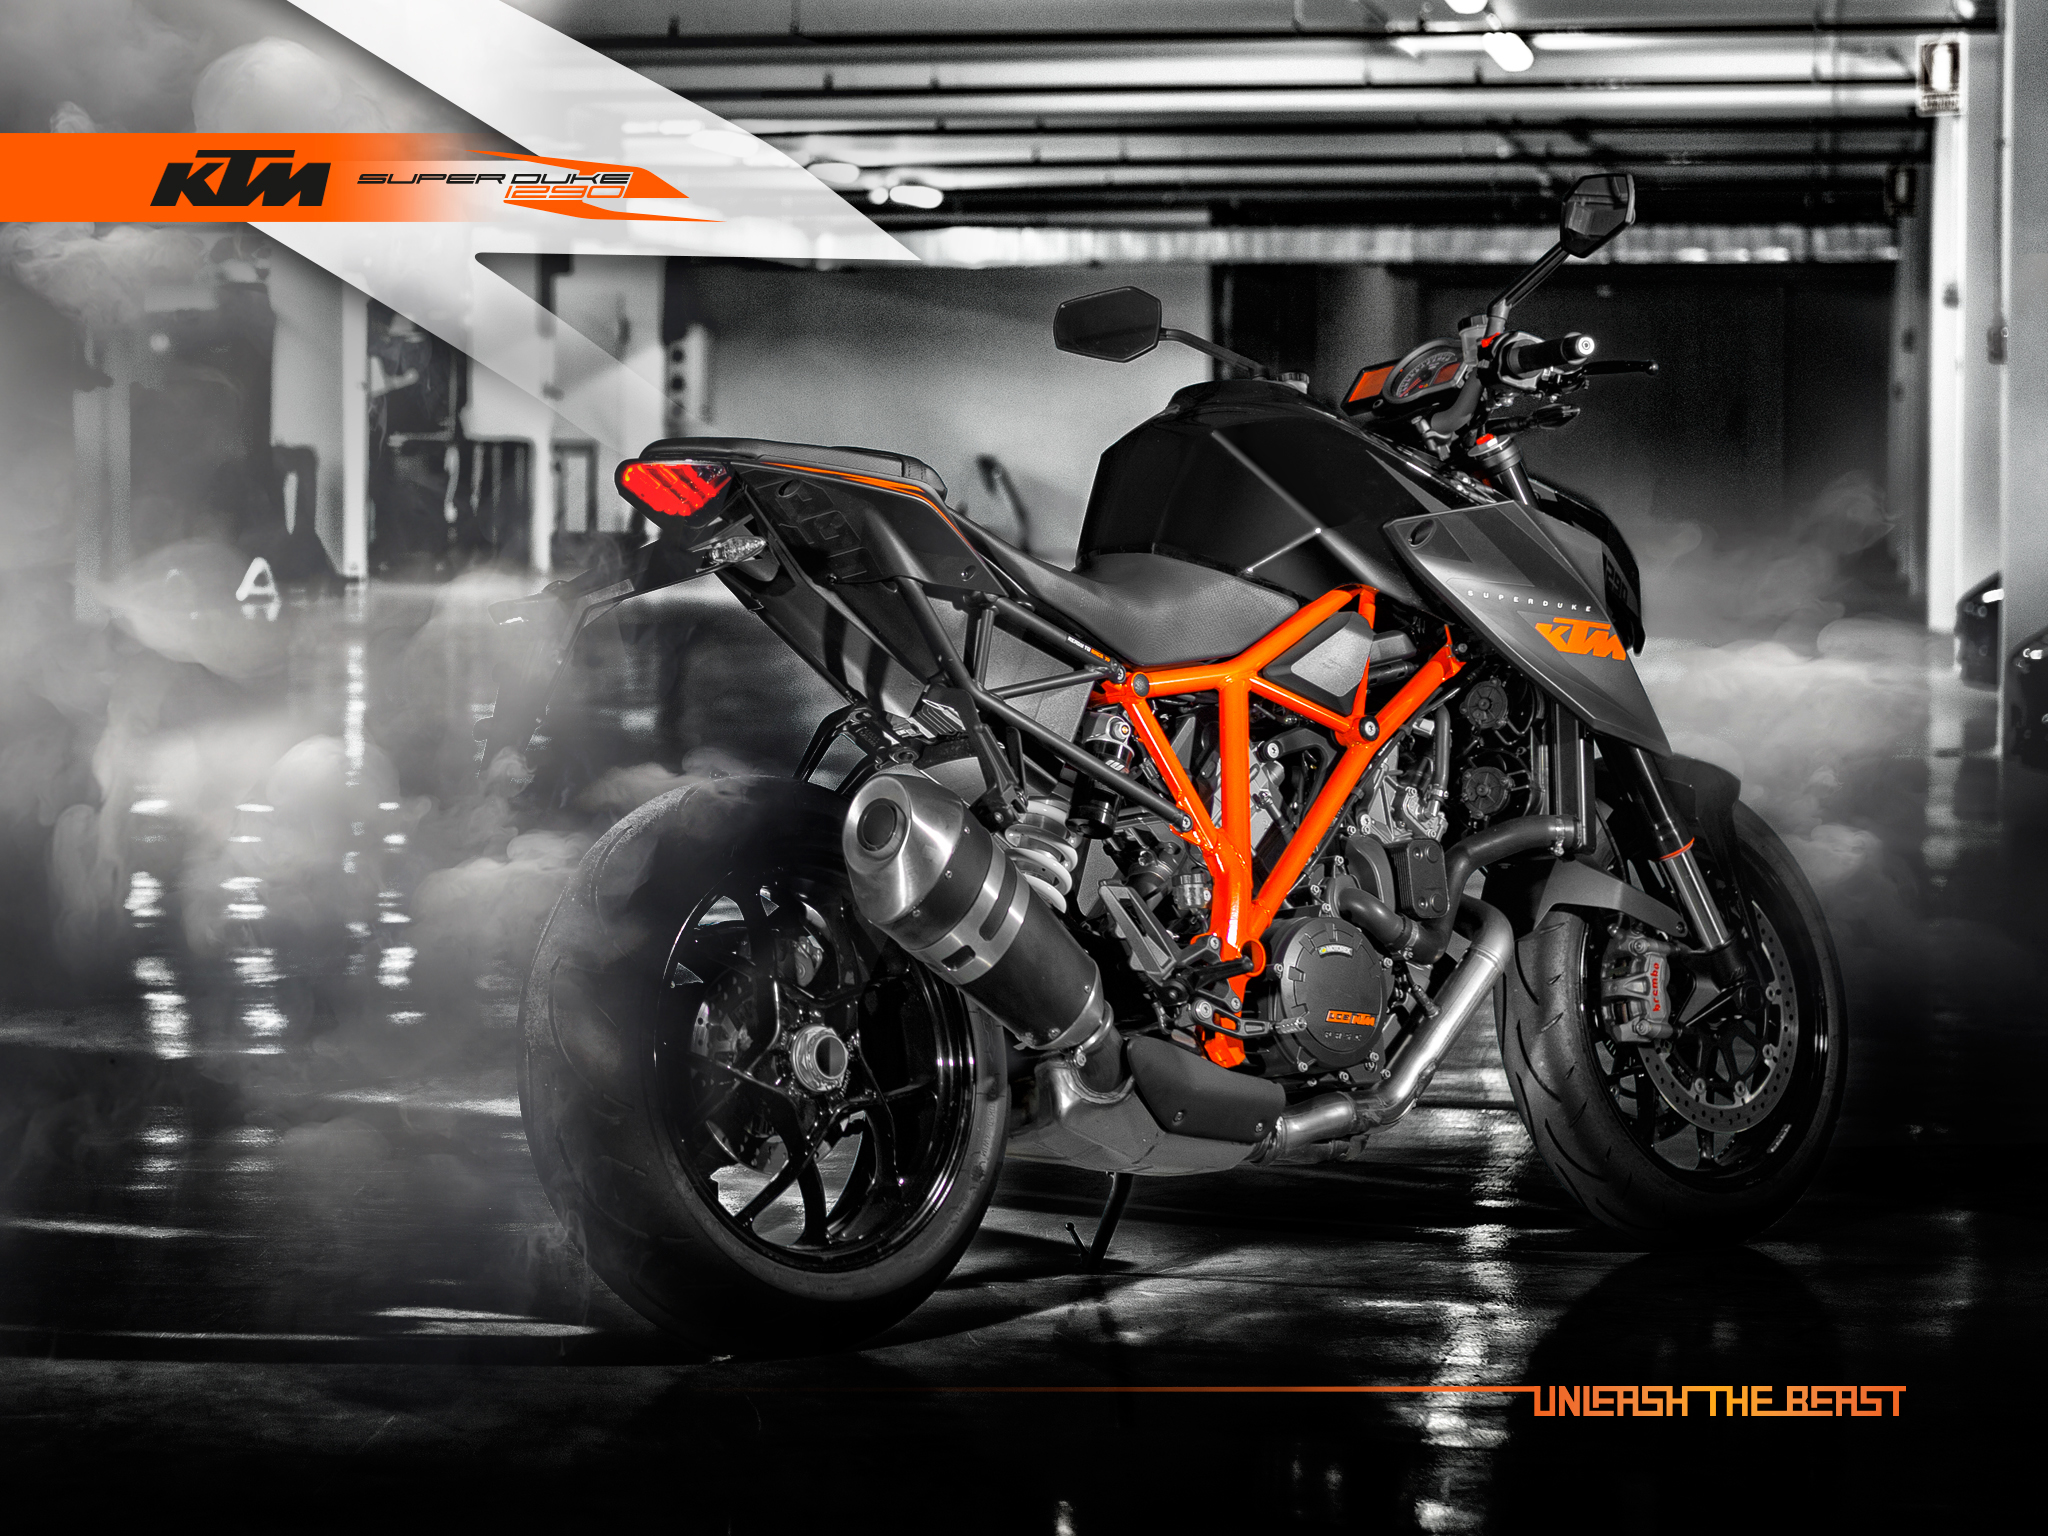 More pictures of Super Duke 1290 R